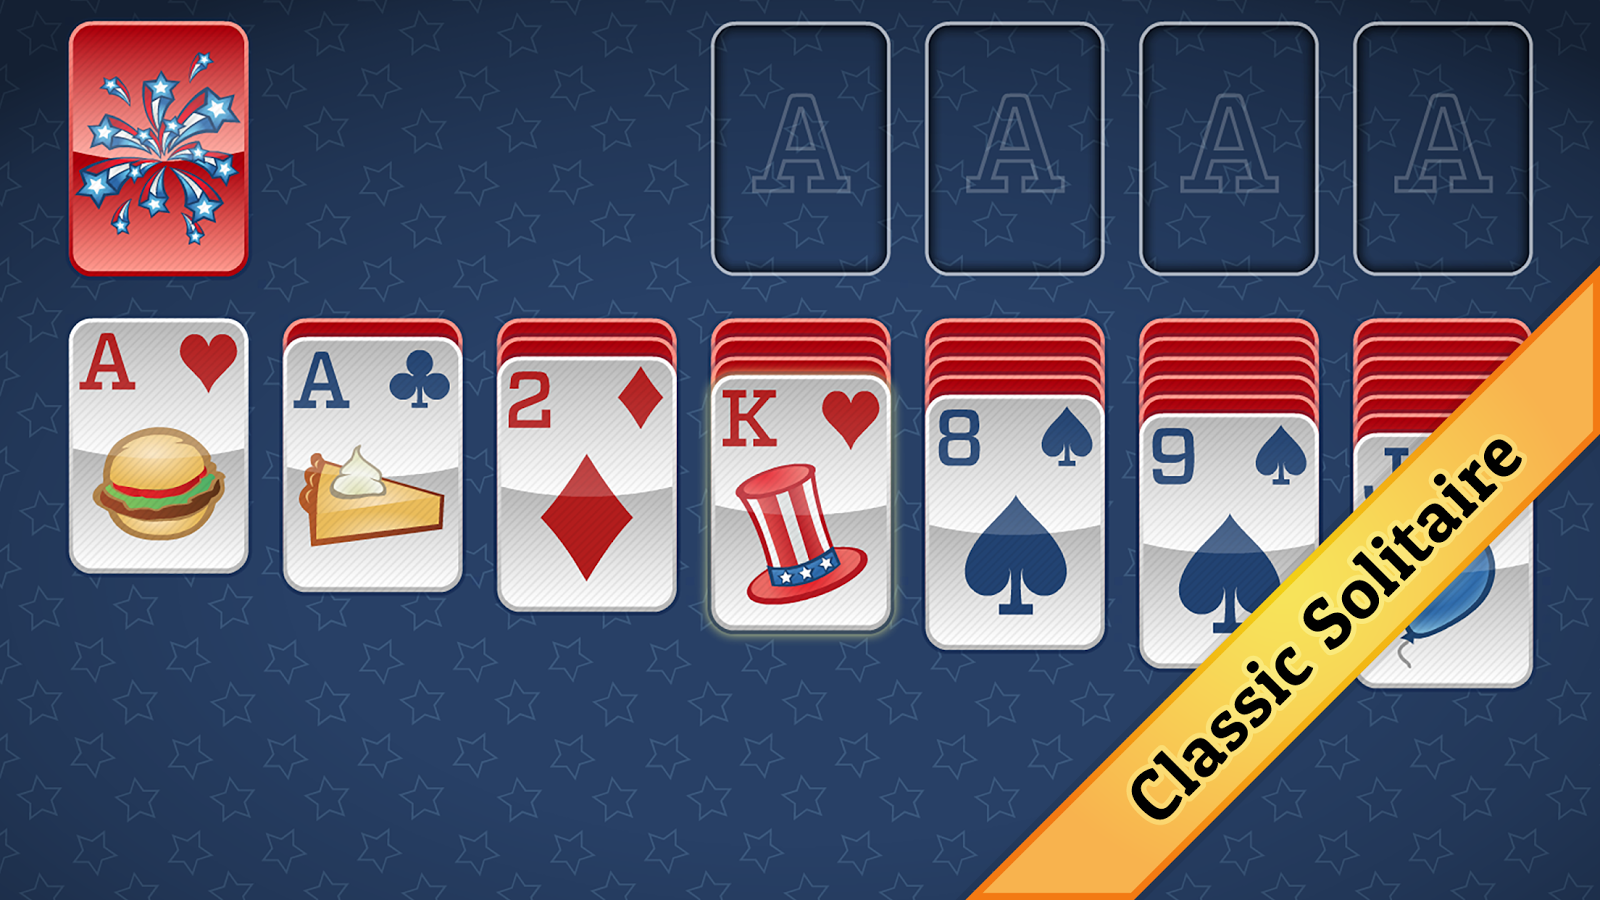 4 july solitaire card game